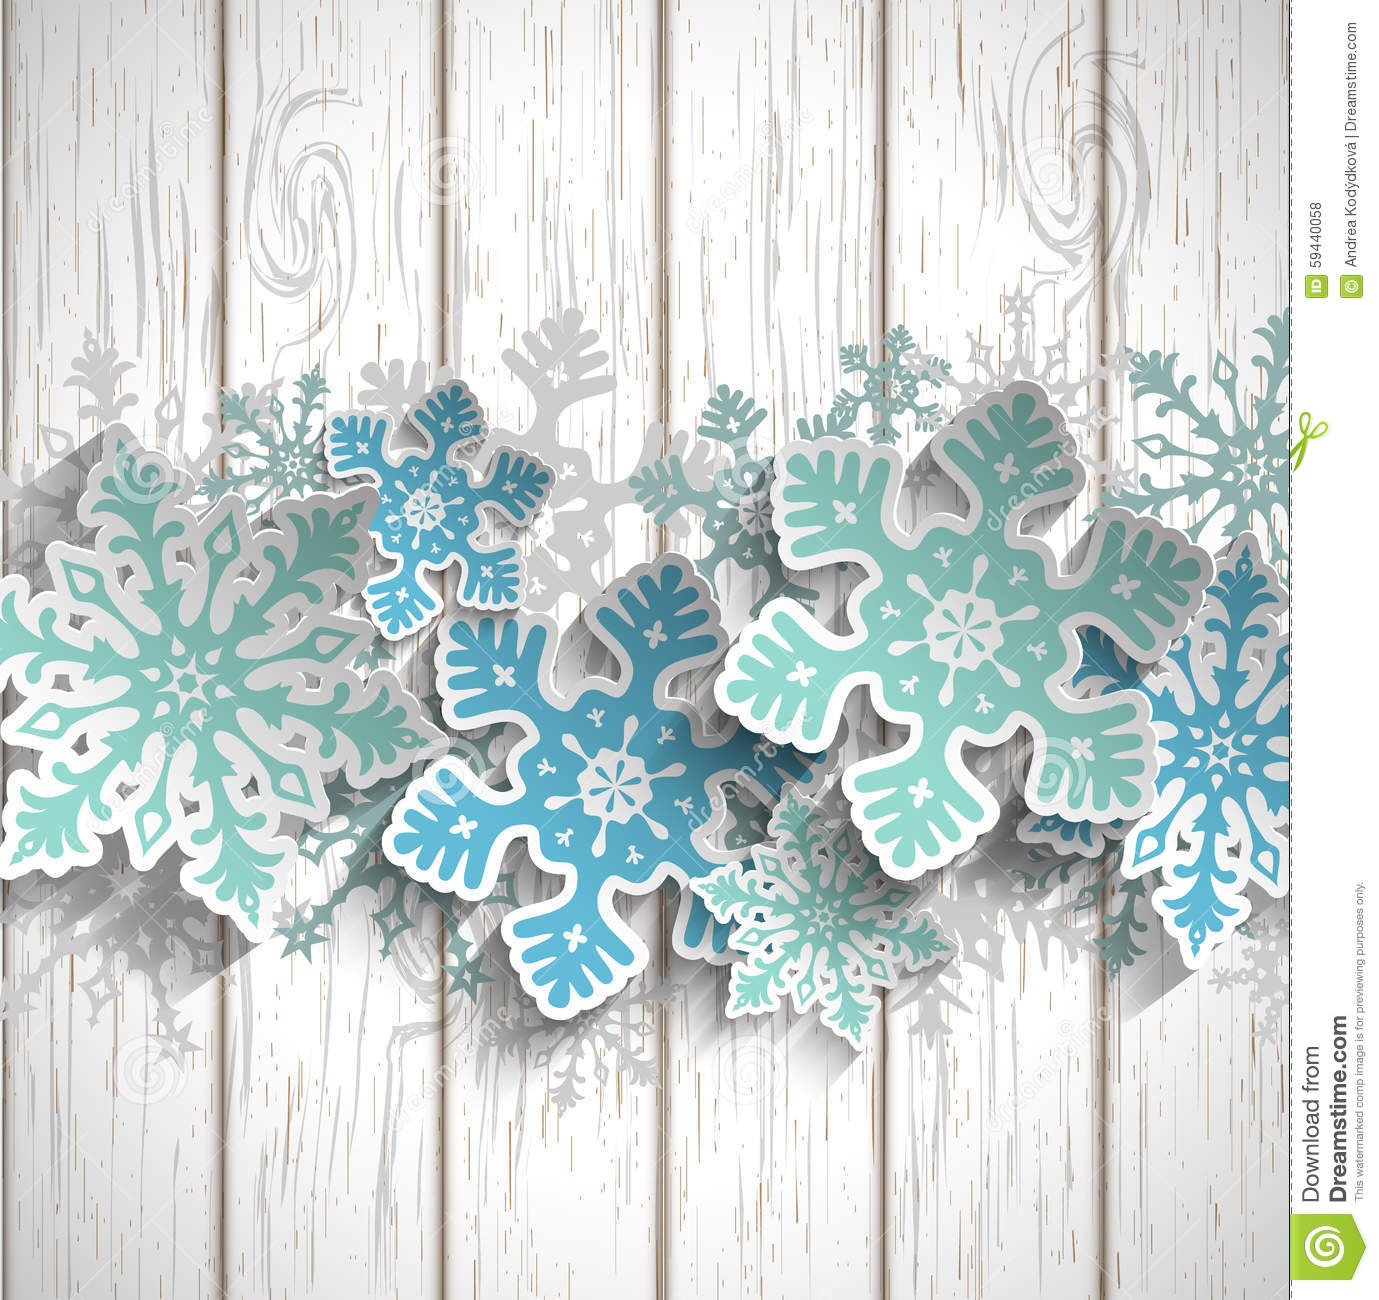 Snow White Wall Stickers Abstract Snowflakes On White Wood Winter Concept